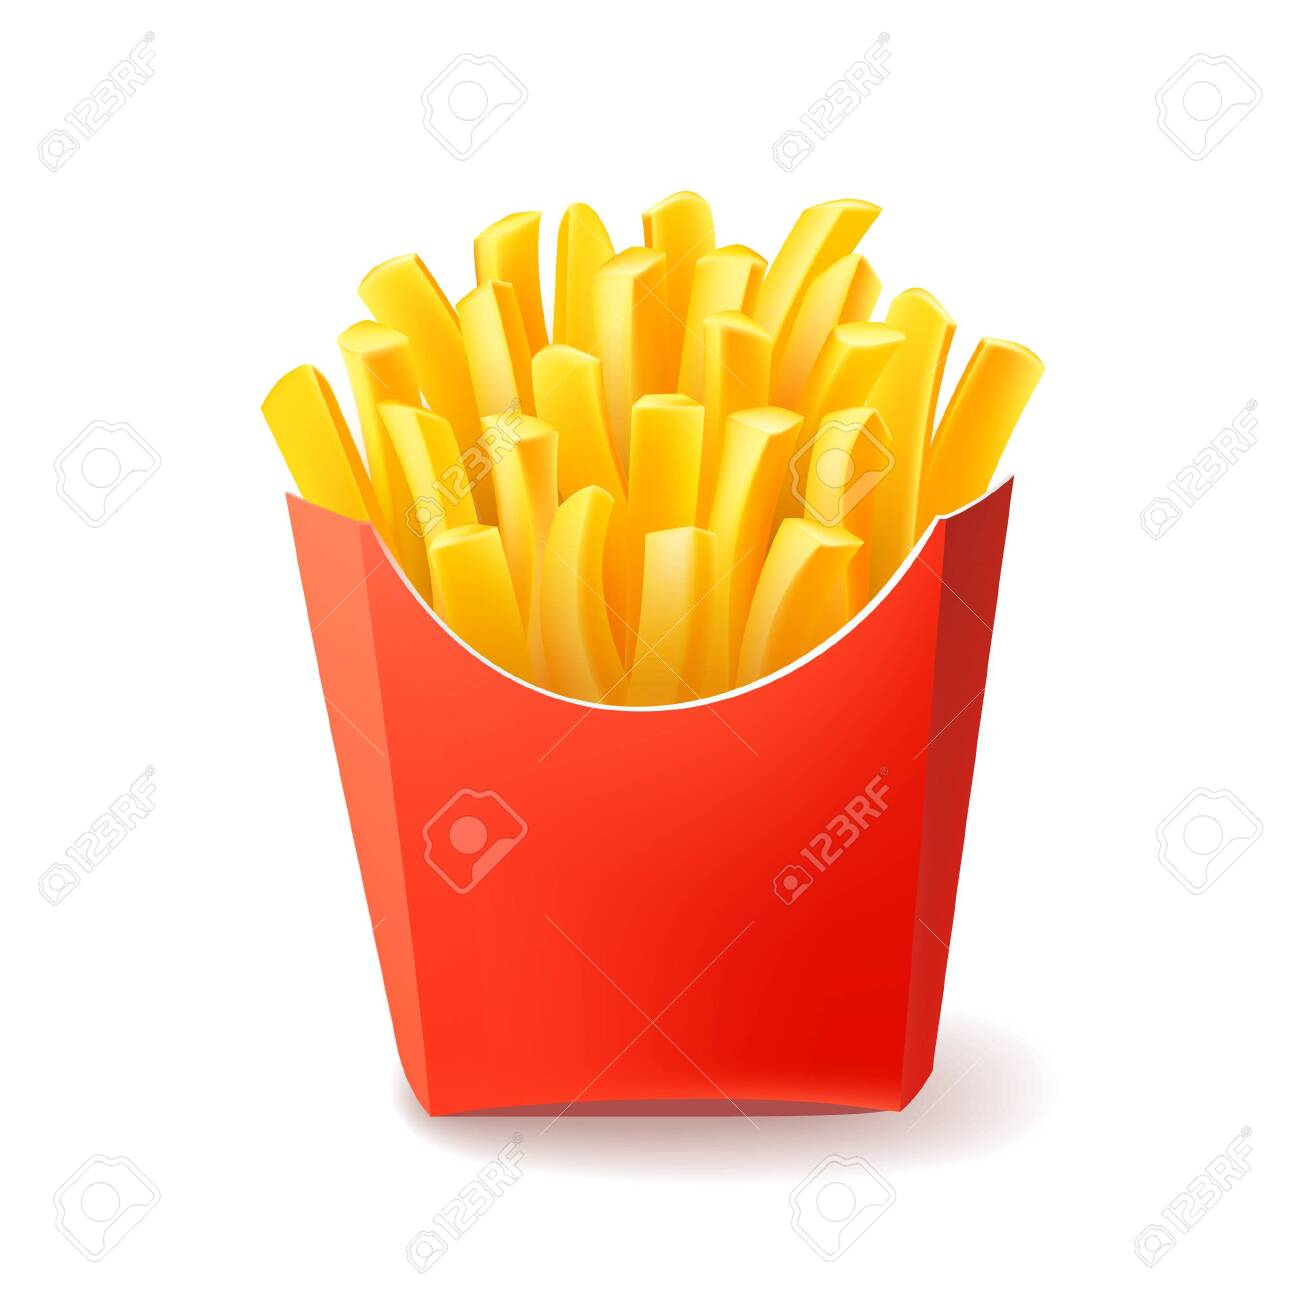 Vector Potatoes French Fries in Red Carton Package Box Isolated on White background. Fast Food - 149422963